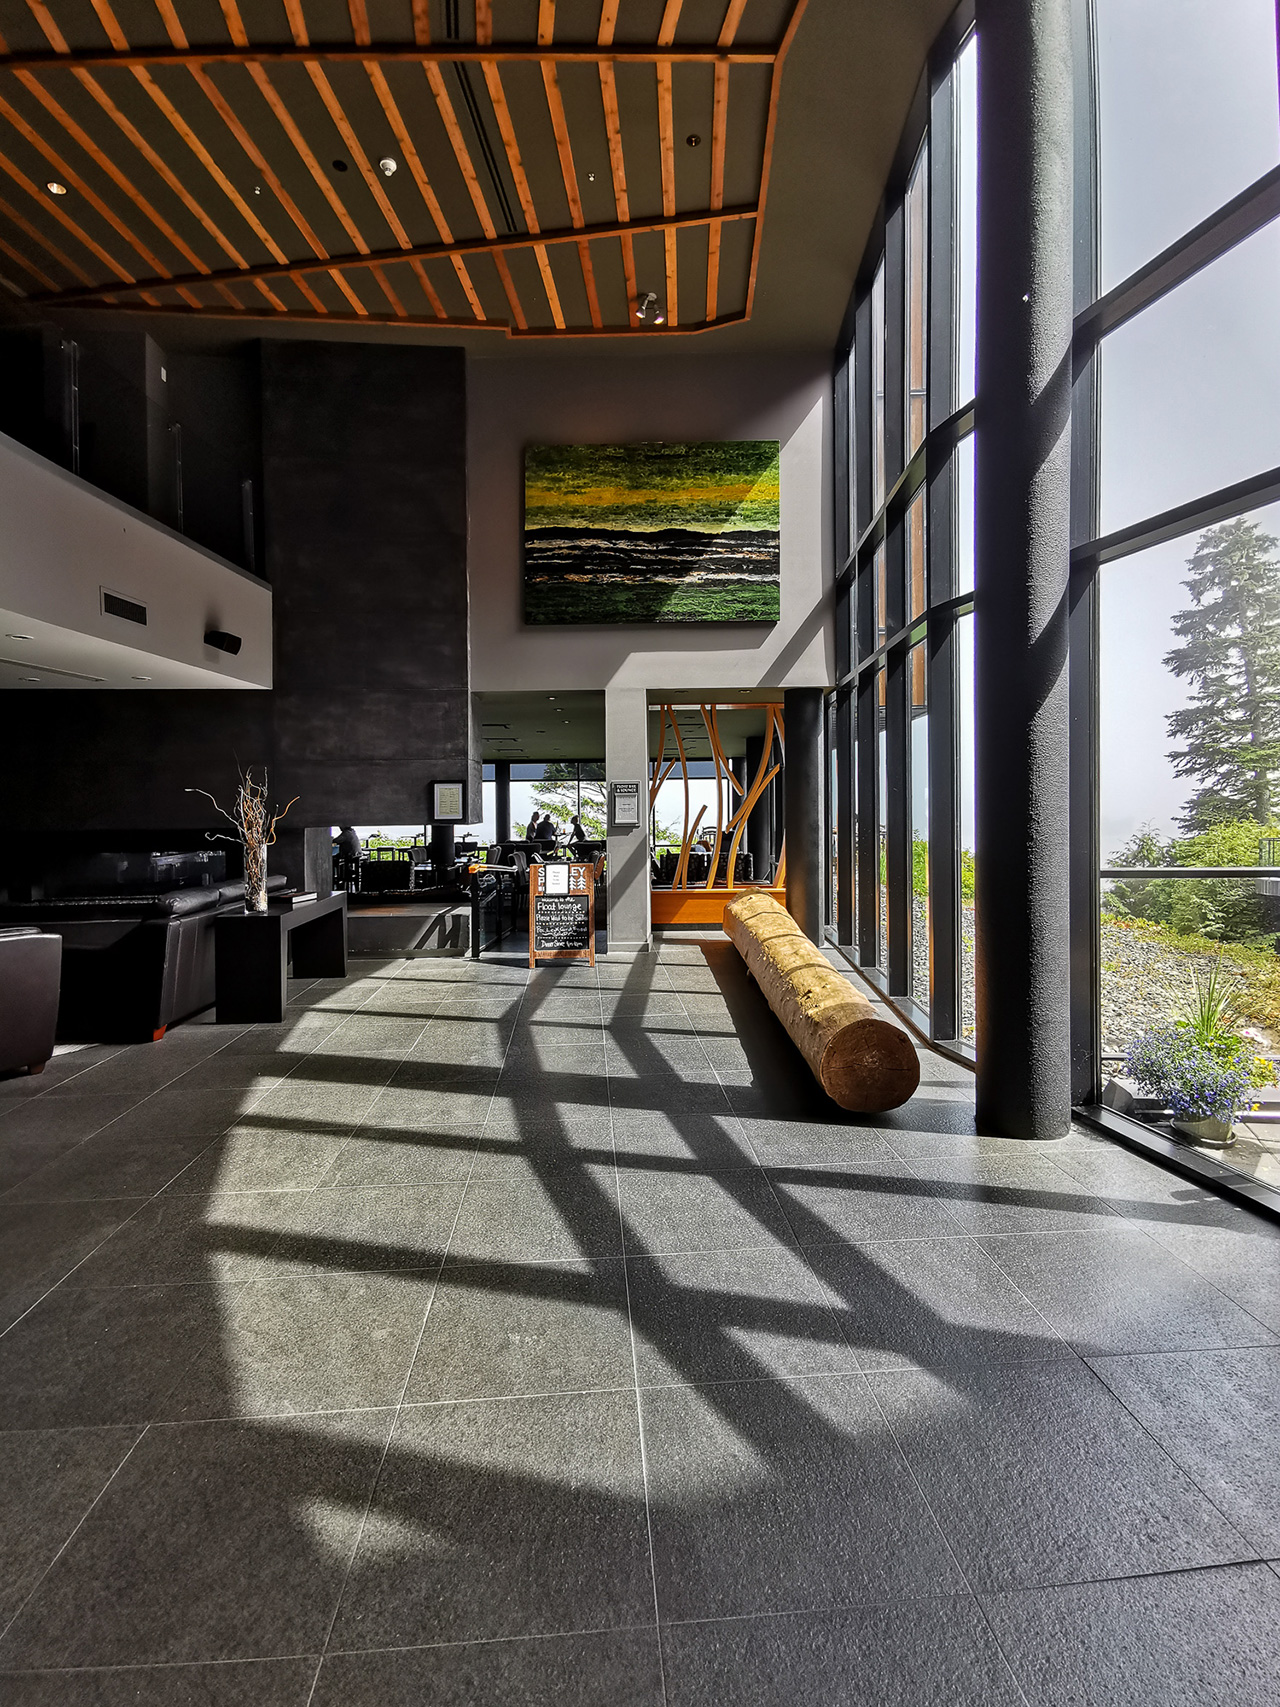 Contrasting shadows in the spacious double height lobby.